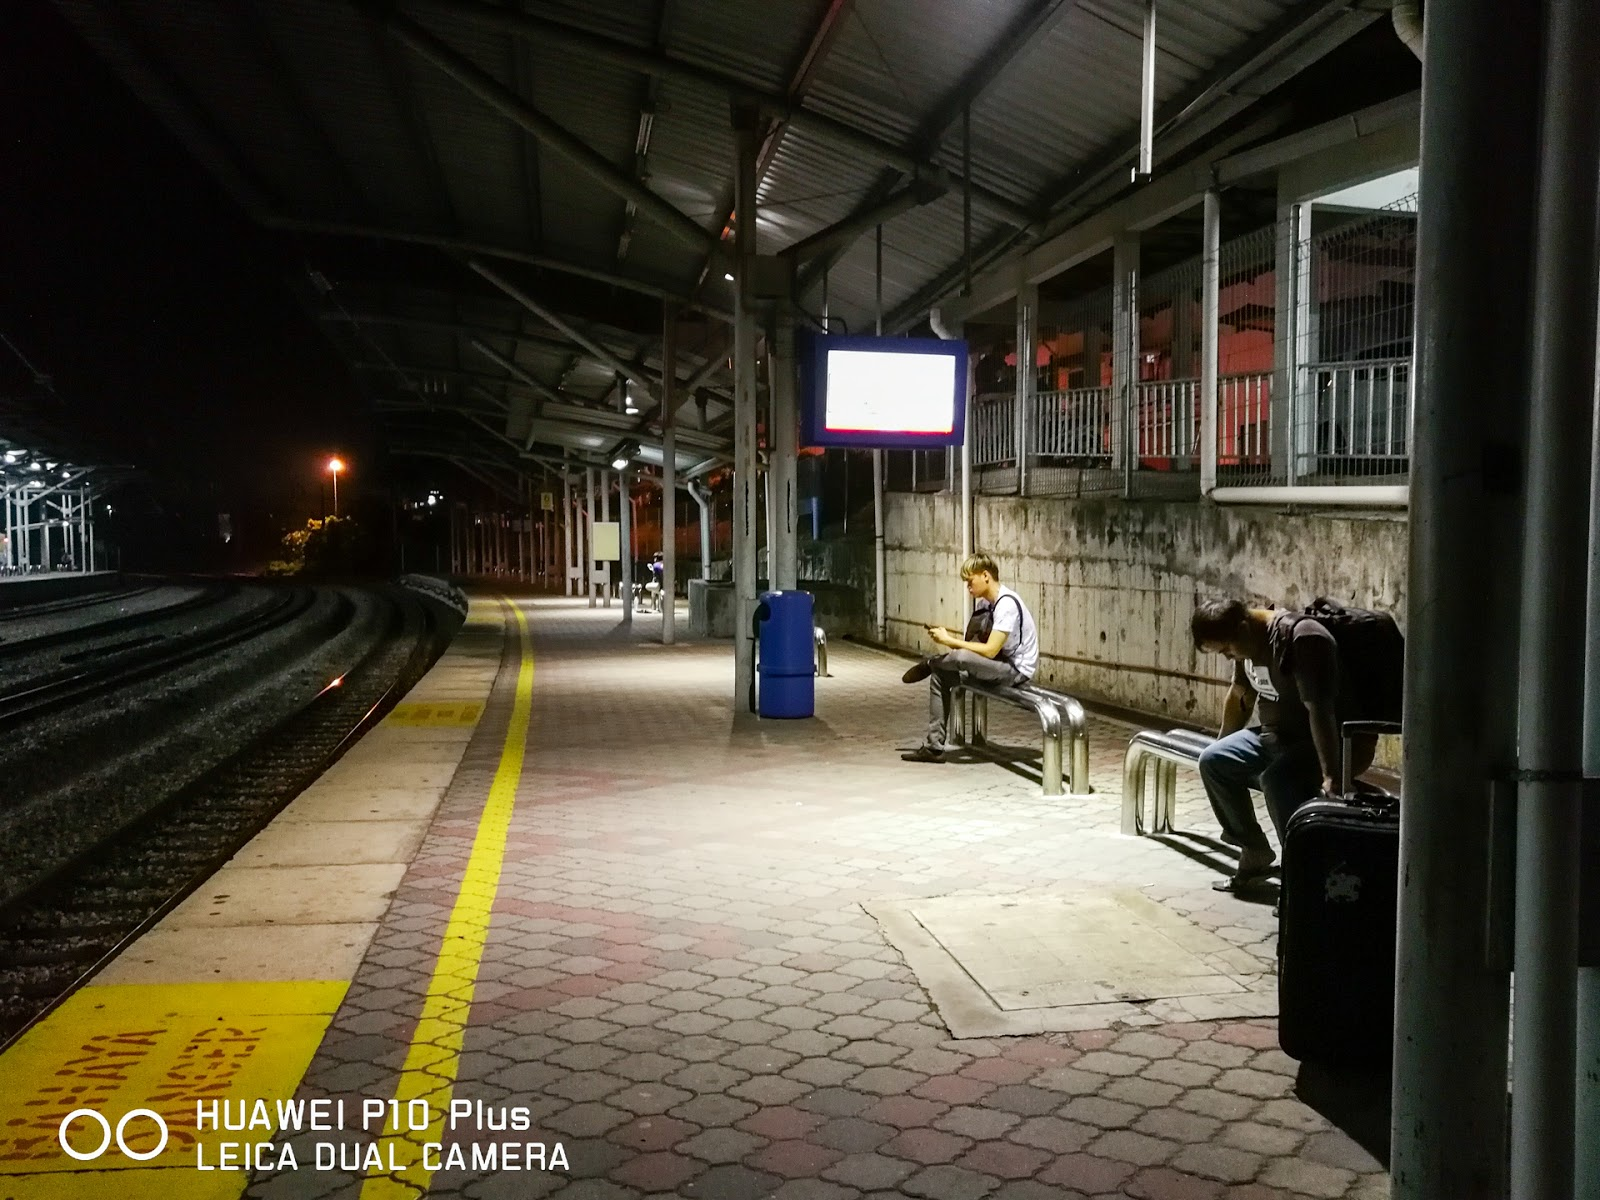 Auto mode Photography with Huawei P10 Plus 11